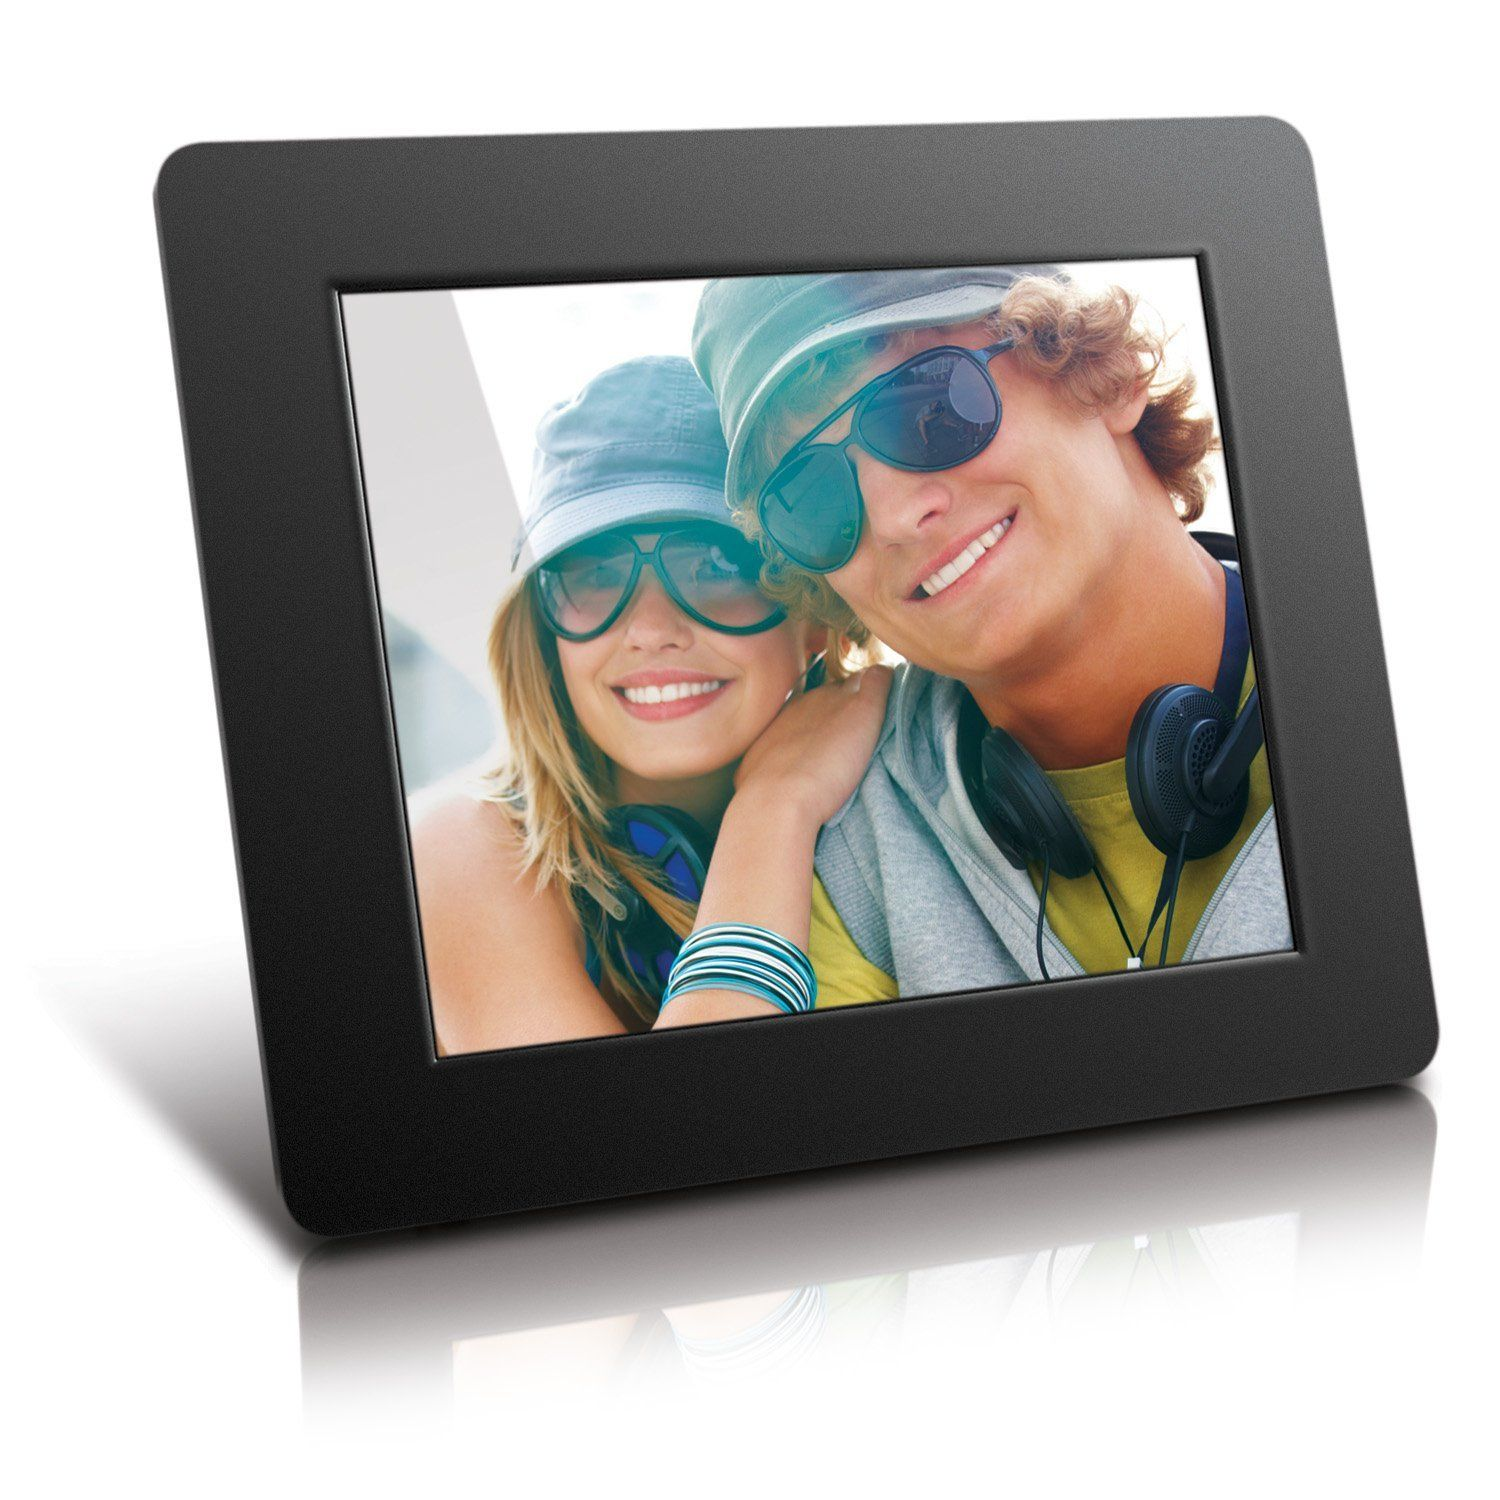 sony dpf d70 7 inch digital photo frame a 7 inch digital photo frame with 800x480 resolution 159 aspect ratio lcd screen 256mb of internal mem - Moving Picture Frame